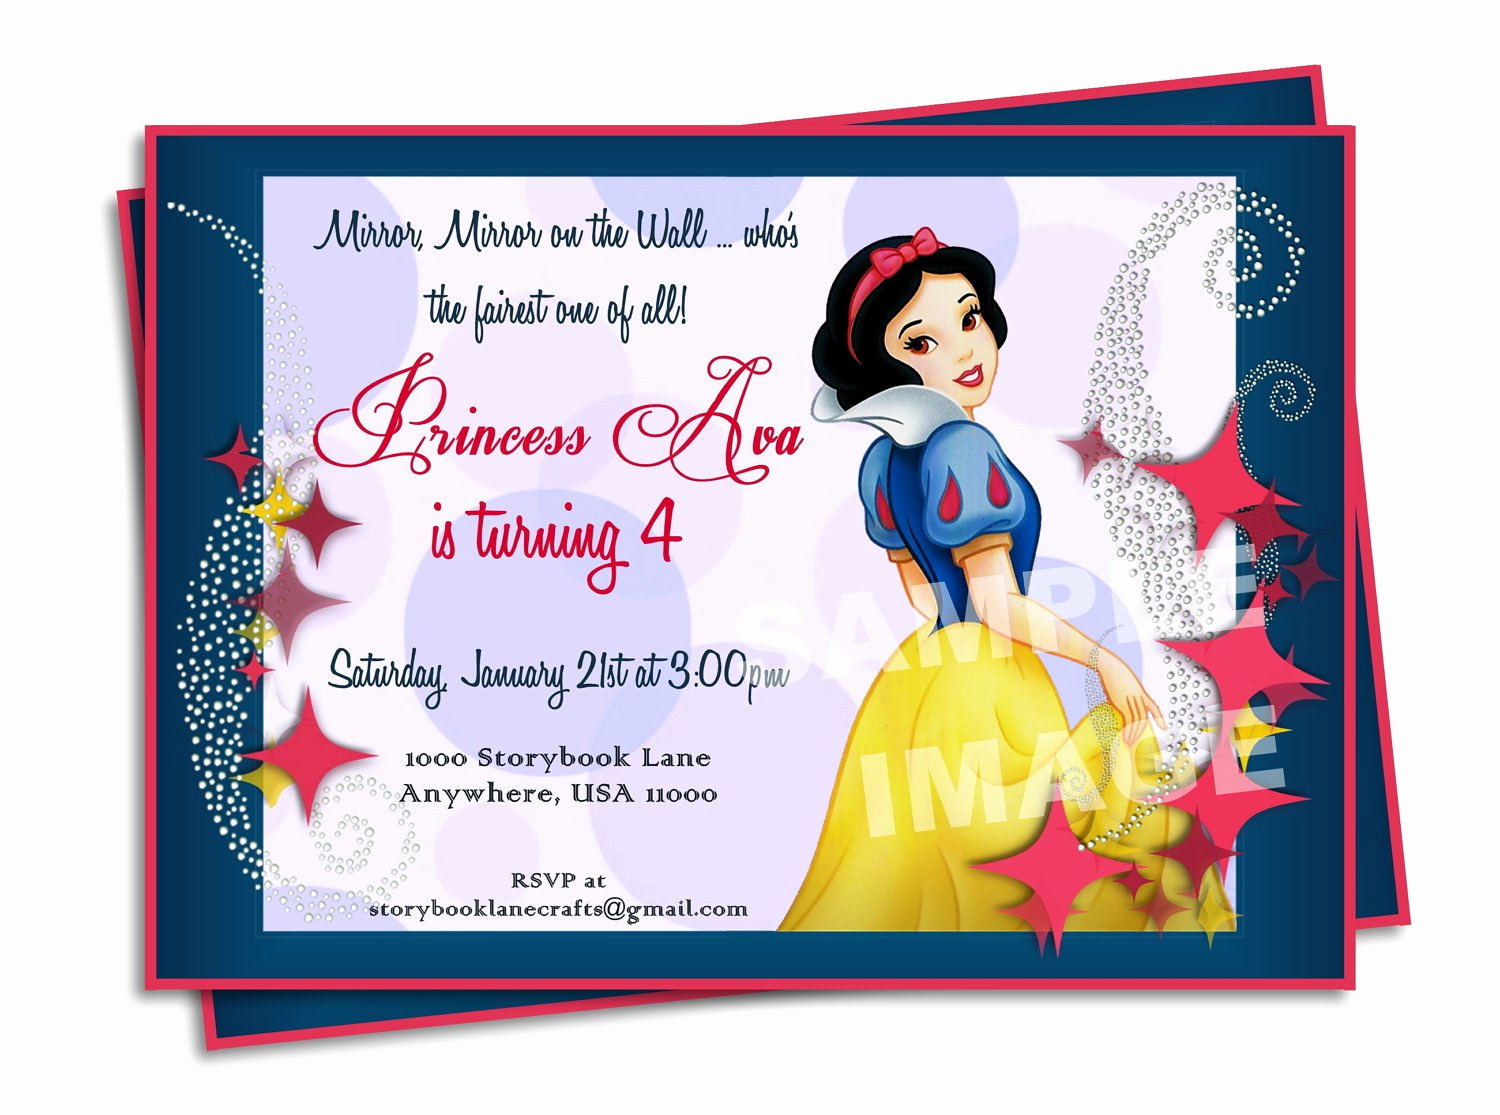 White Party Invitation Ideas Fresh Snow White Birthday Party Invitations